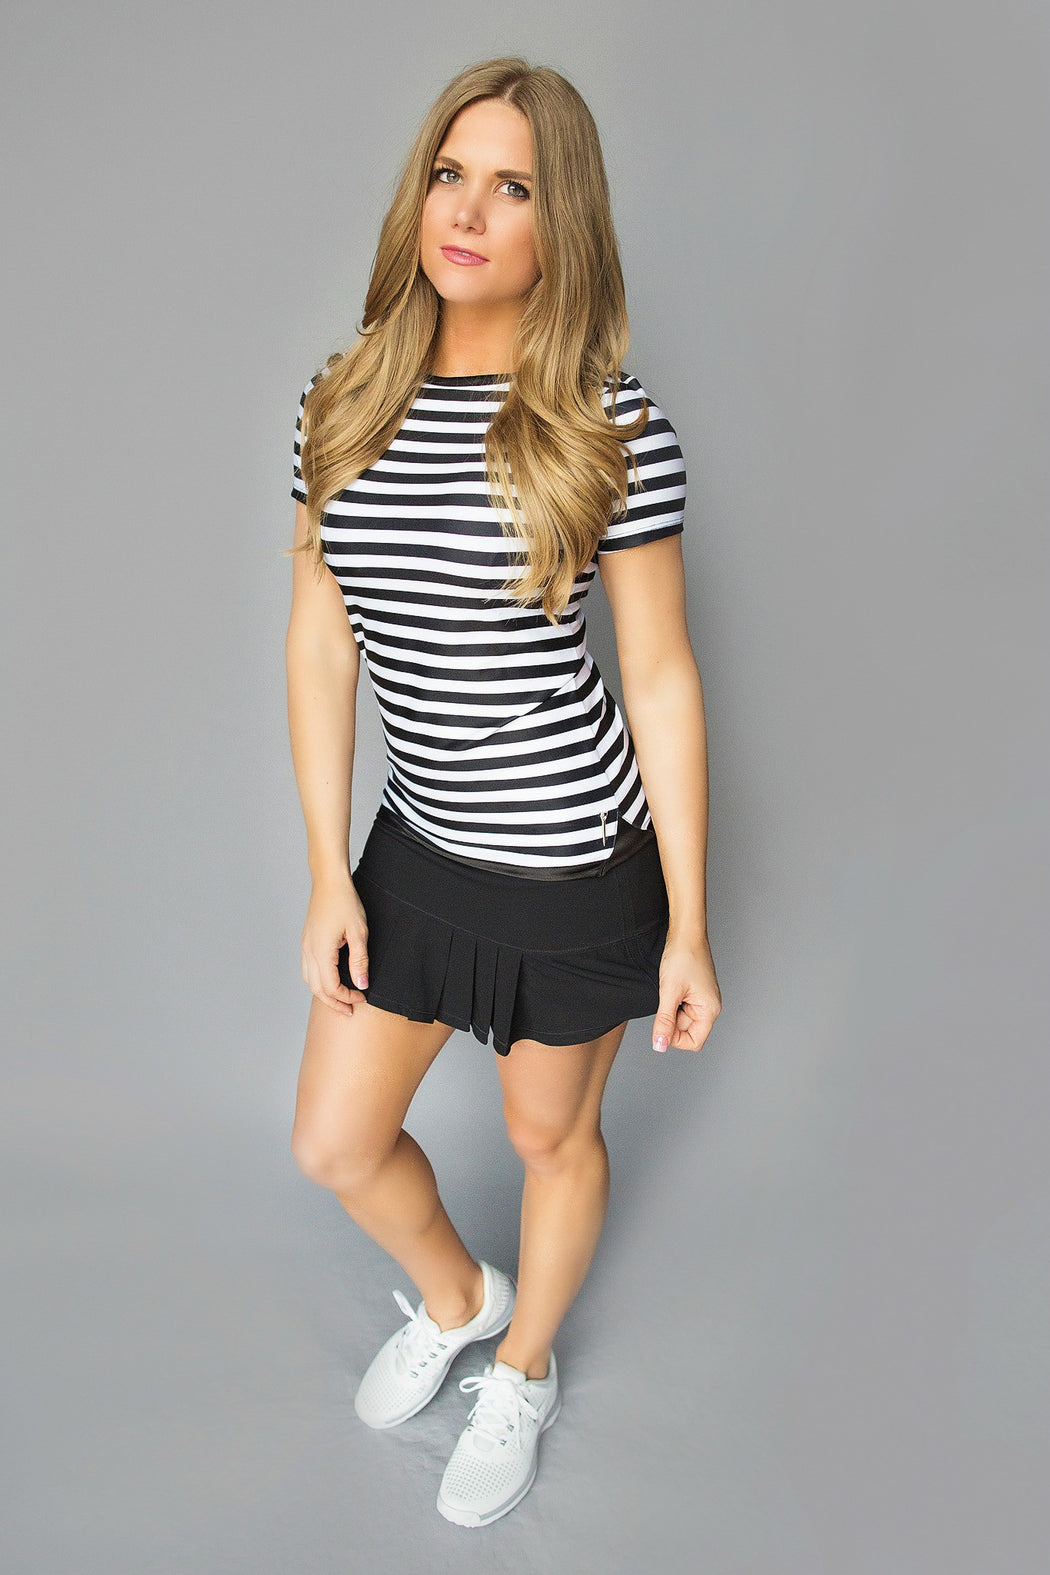 Scoop Back Golf Tee - Black and White Stripes - FlirTee Golf